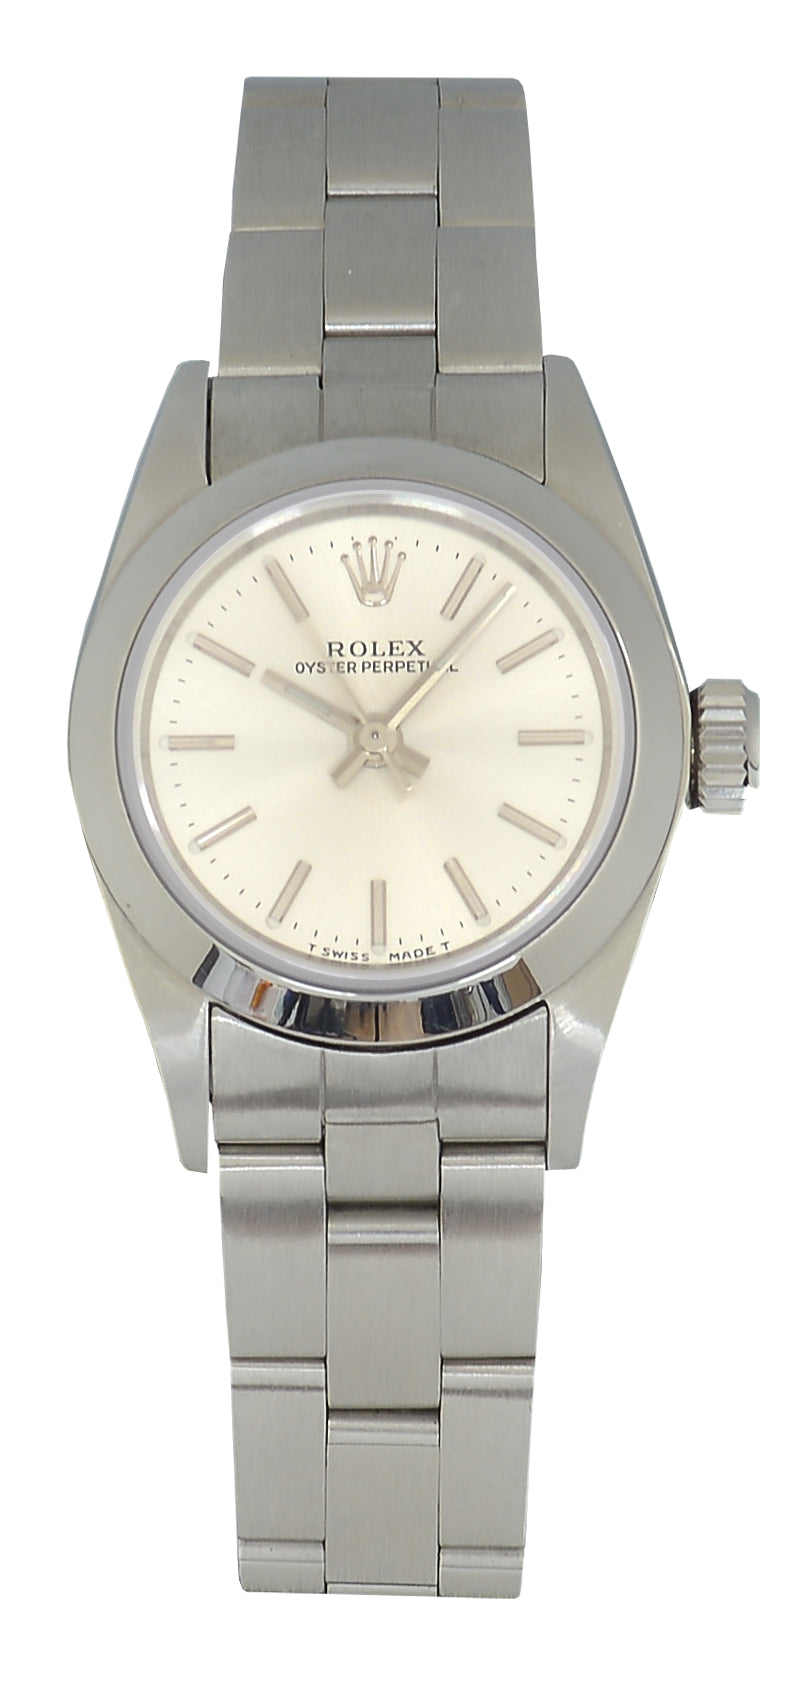 Rolex Oyster Perpetual Ladies Watch Silver Dial, Ref: 67180 With Papers